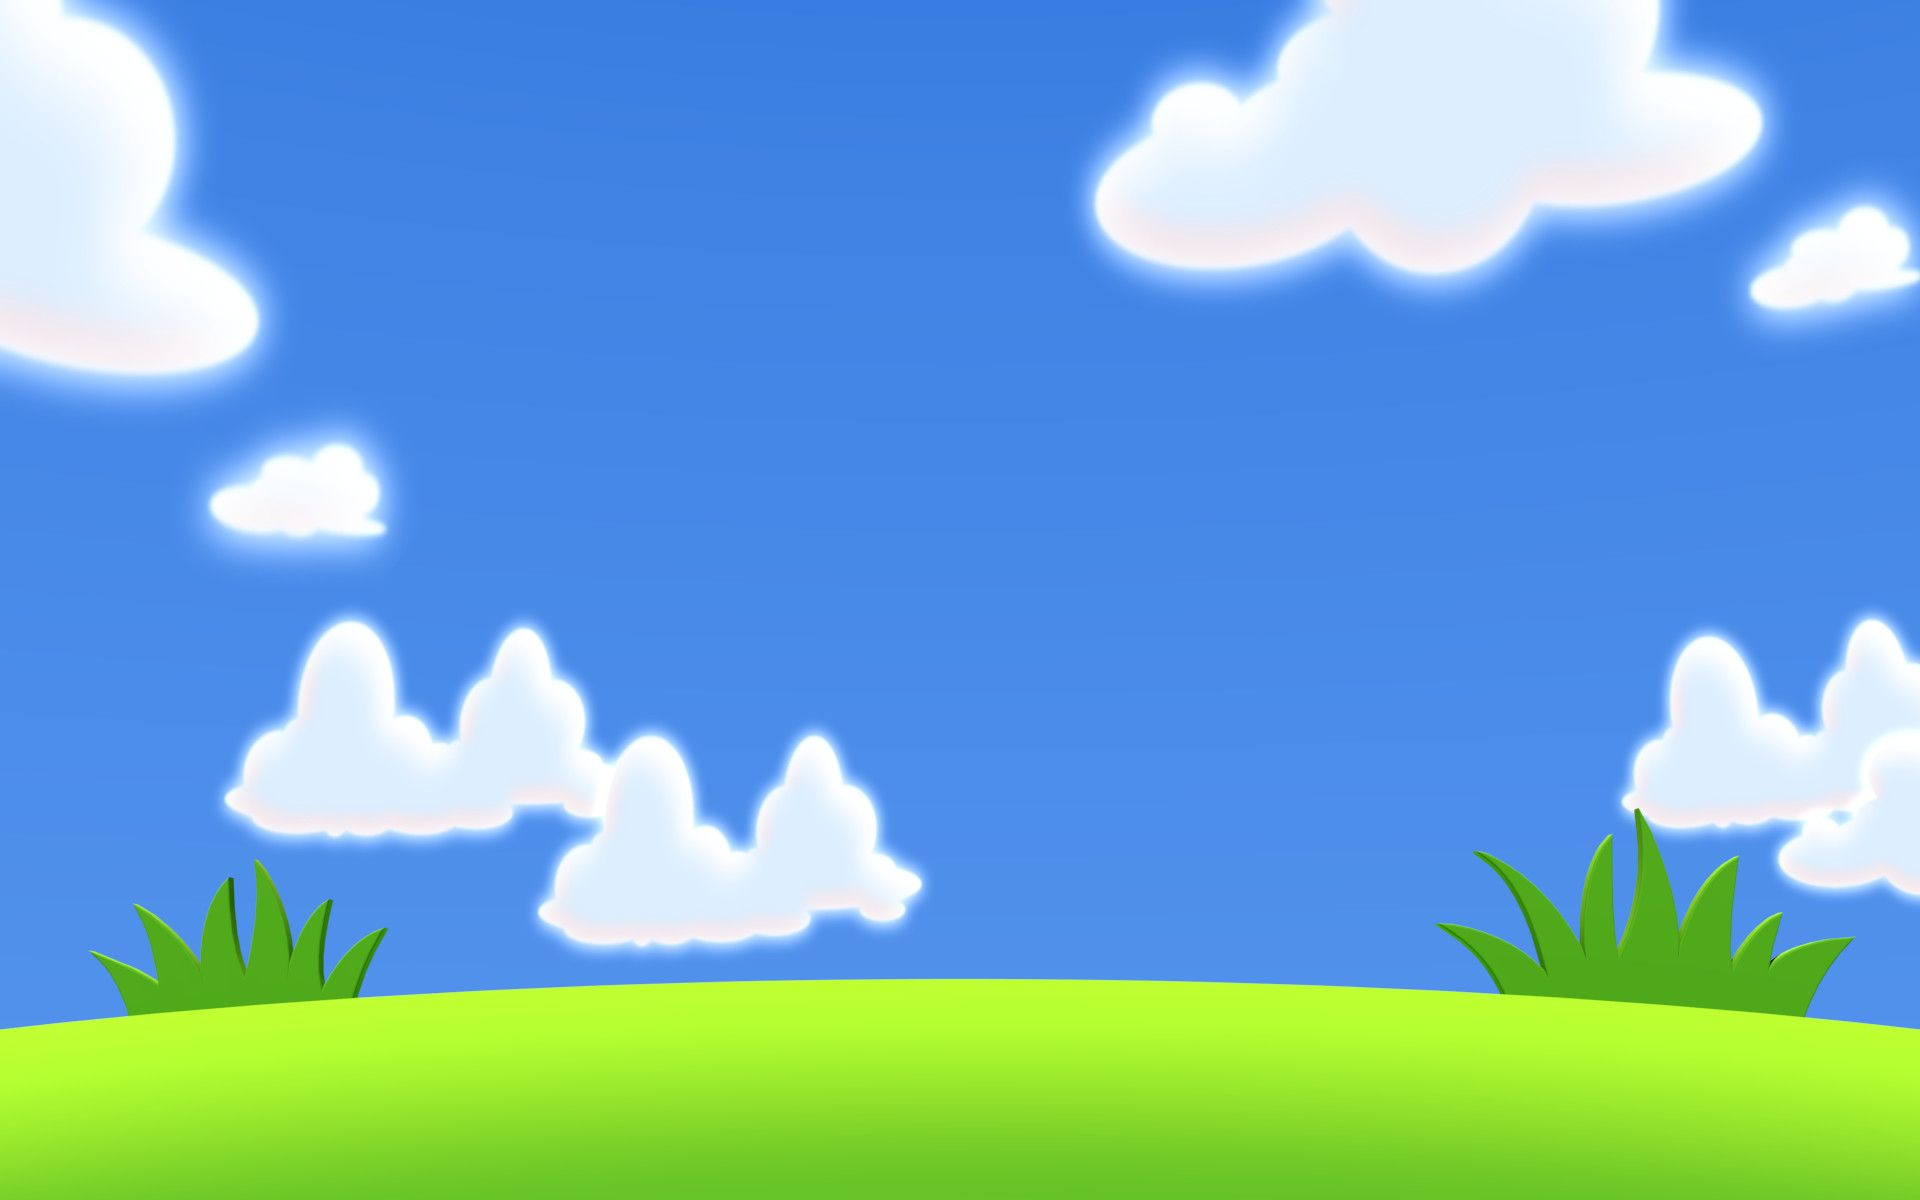 Download 105 Background Blue Cartoon Paling Keren